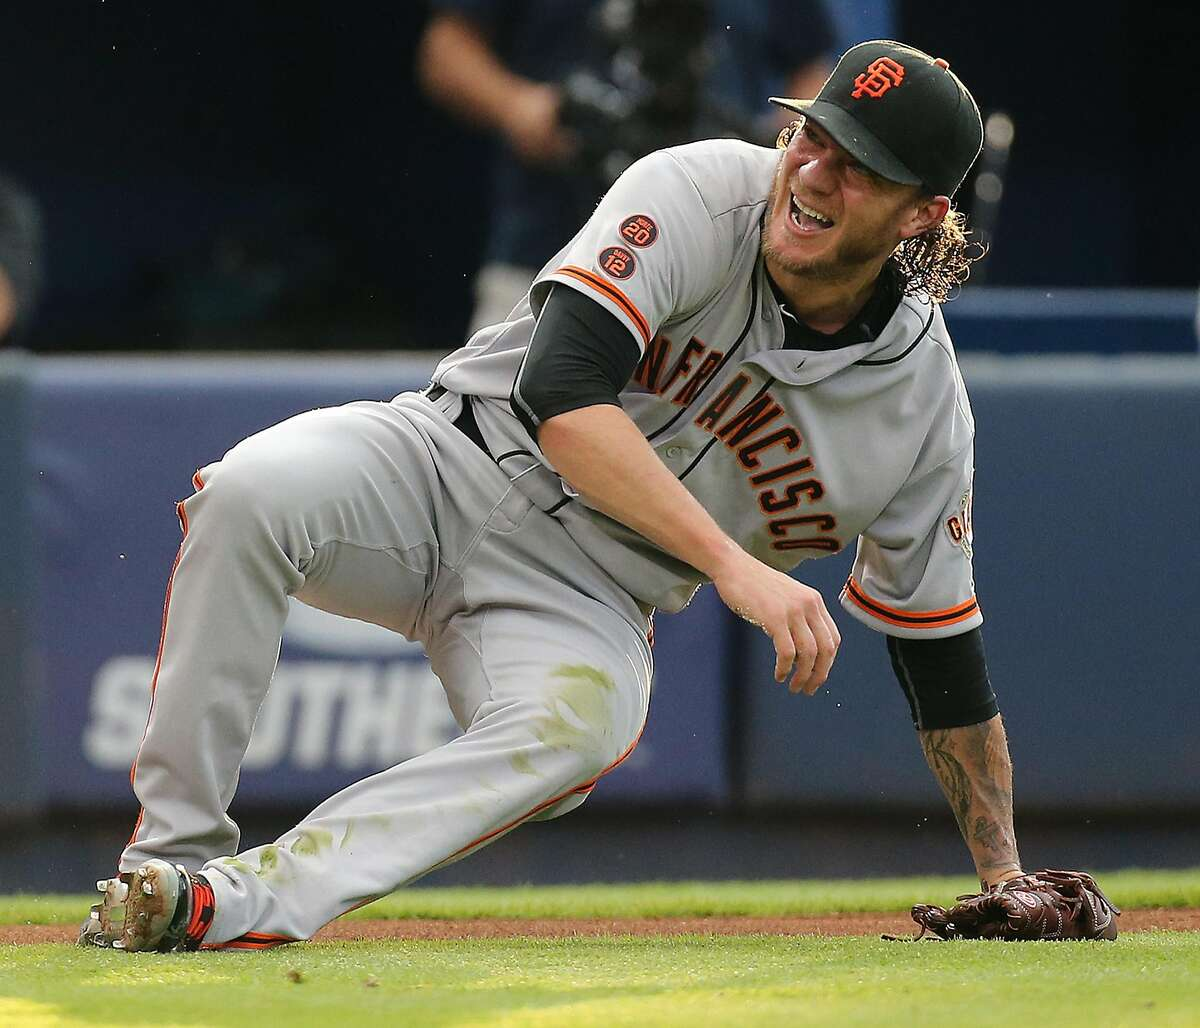 San Francisco Giants pitcher Jake Peavy comes up smiling after hitting the ground trying to field a bunt by the Atlanta Braves' Mallex Smith during the third inning at Turner Field in Atlanta on Tuesday, May 31, 2016. (Curtis Compton/Atlanta Journal-Constitution/TNS)